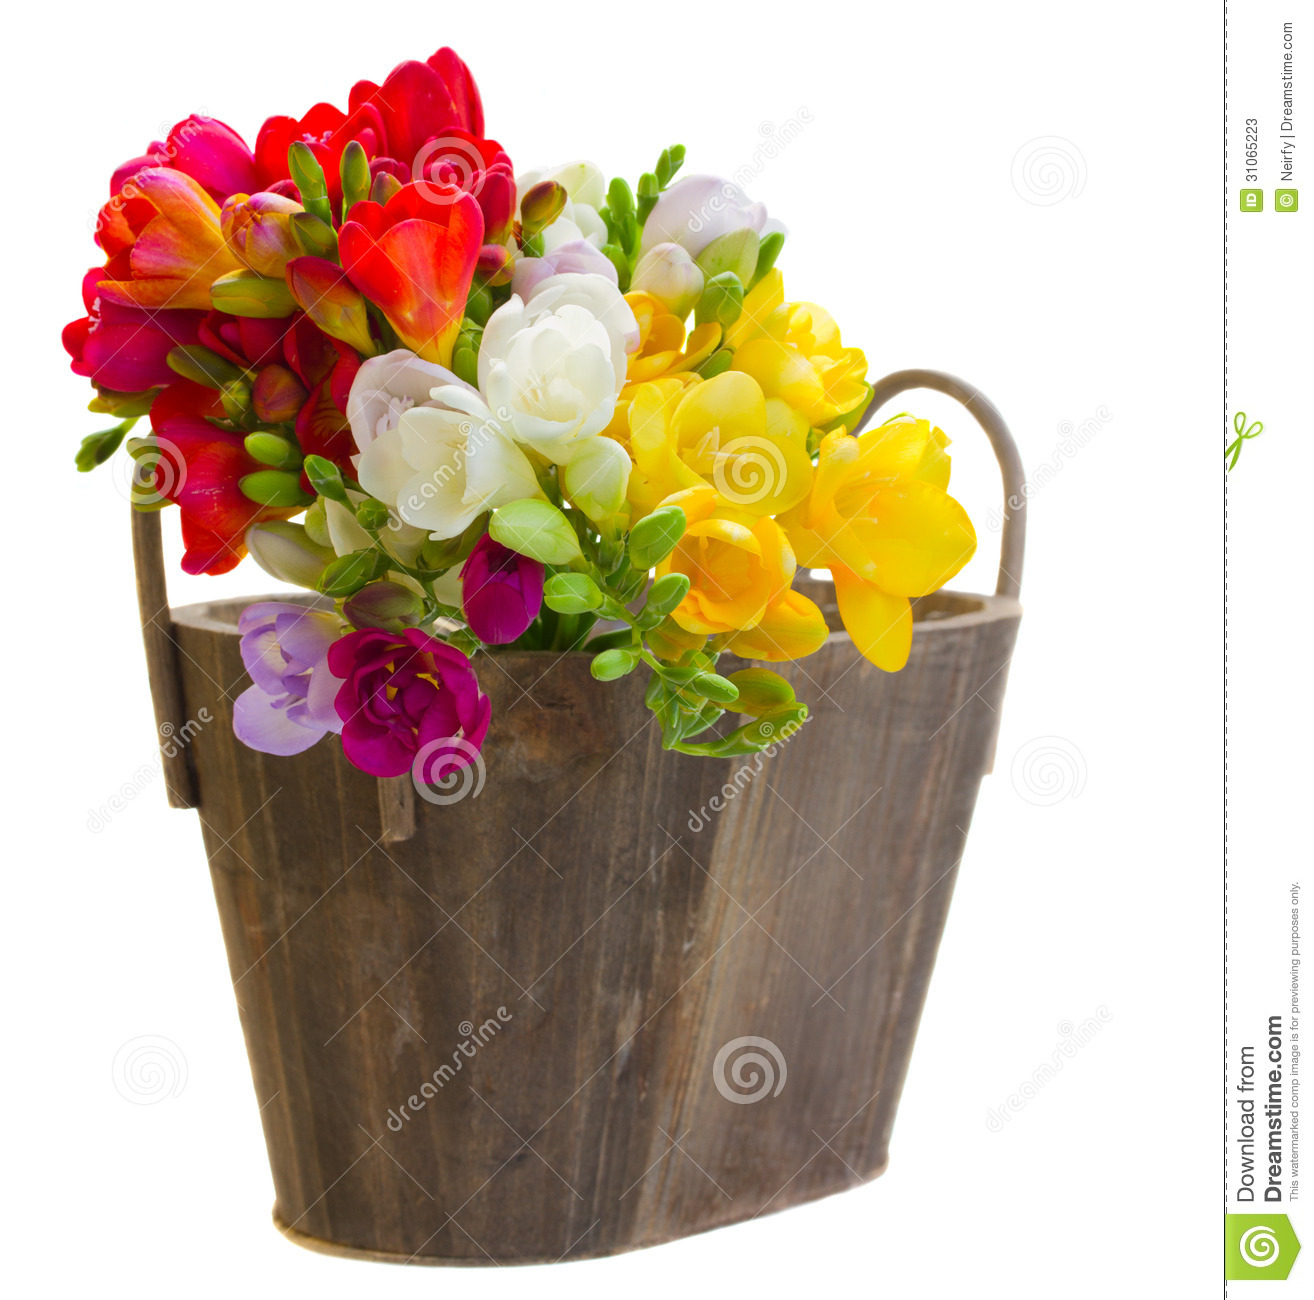 bouquet des fleurs de freesias dans le pot en bois image stock image du nature jour 31065223. Black Bedroom Furniture Sets. Home Design Ideas